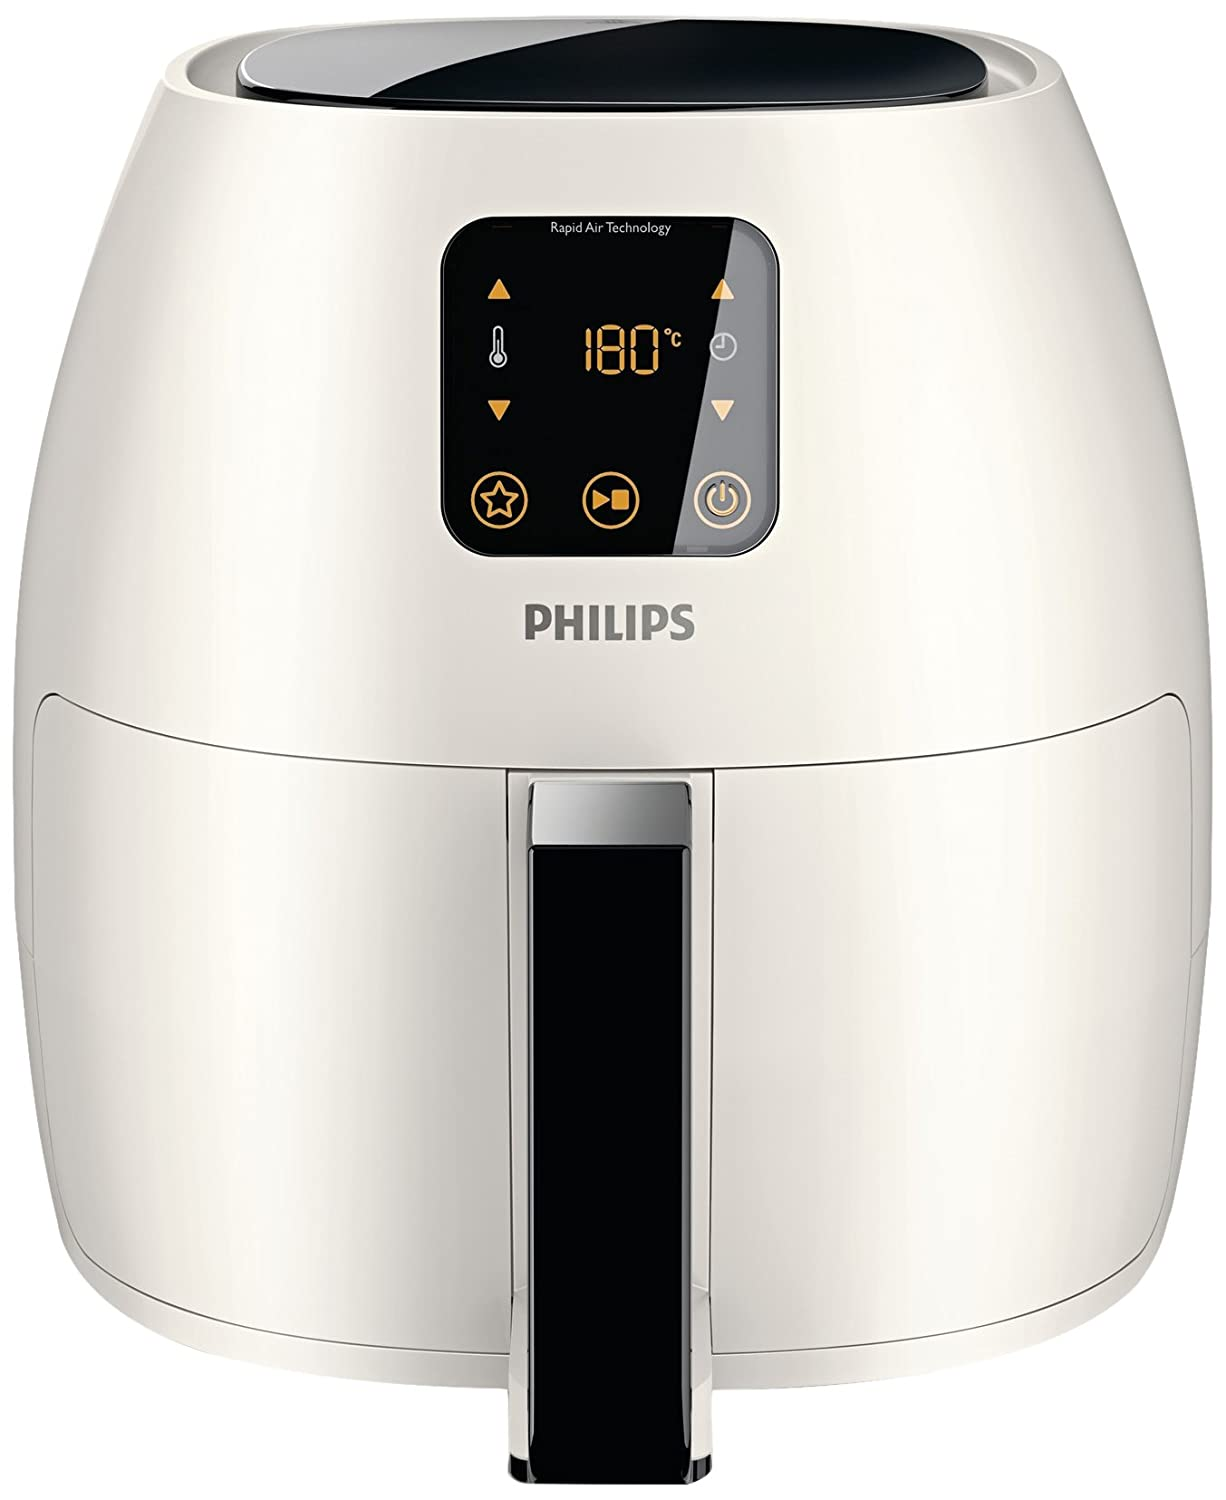 Think Kitchen Air Fryer Reviews